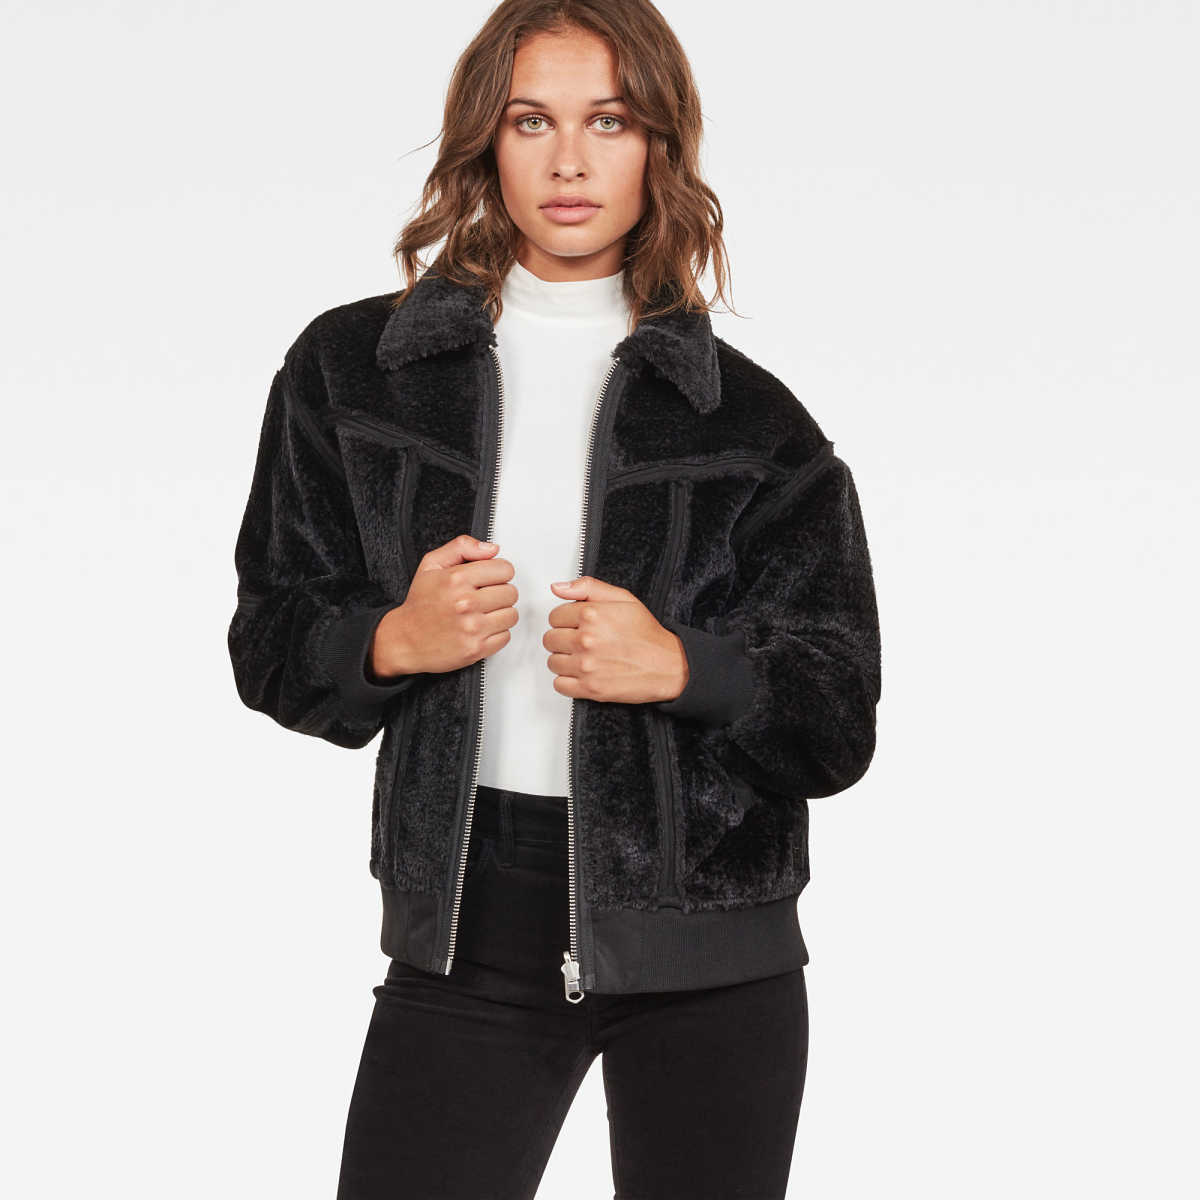 G-Star Female Deline Teddy Reversible Bomber Jackets and Blazers Relaxed Black USA - GOOFASH - Womens JACKETS